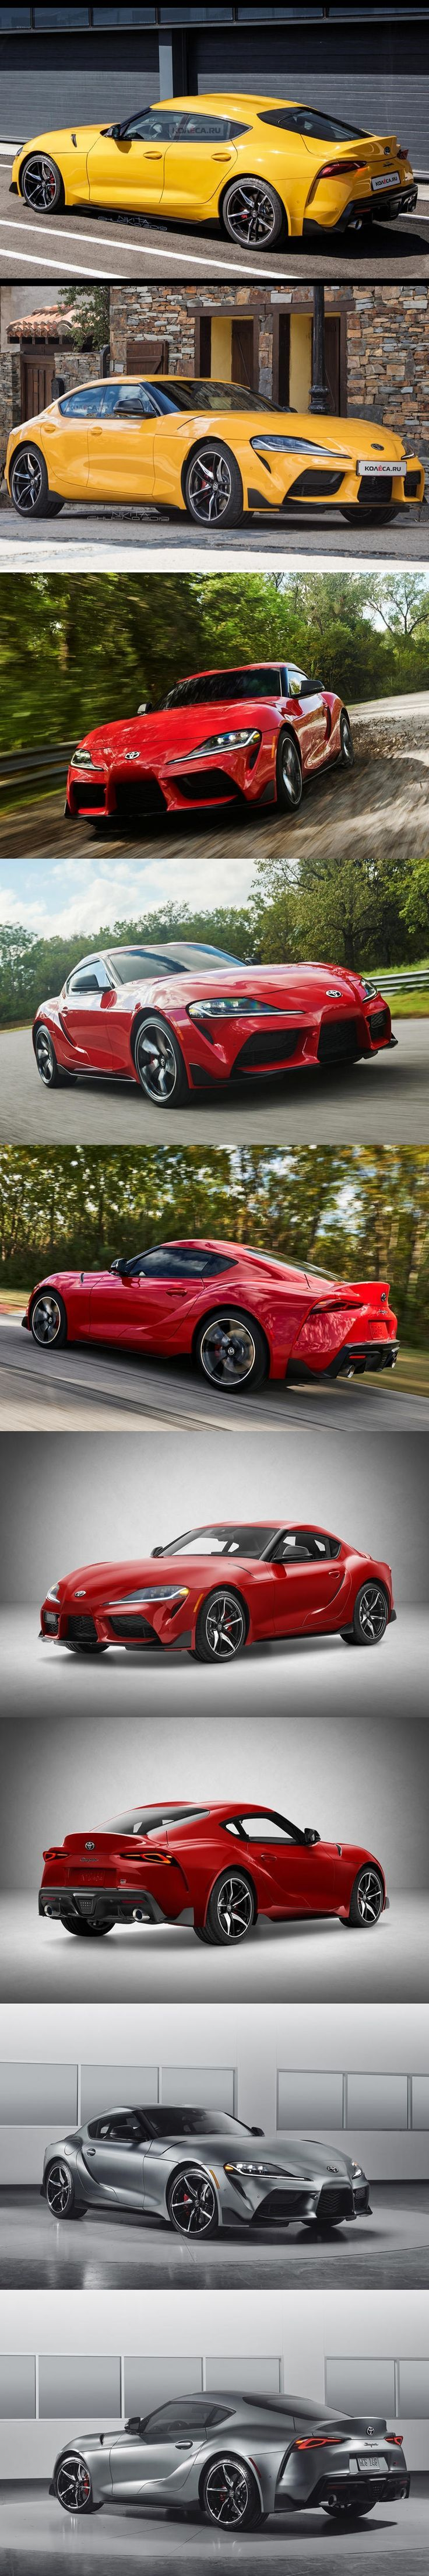 Four-Door Toyota Supra Is The Perfect Family Car. But does the world really need…